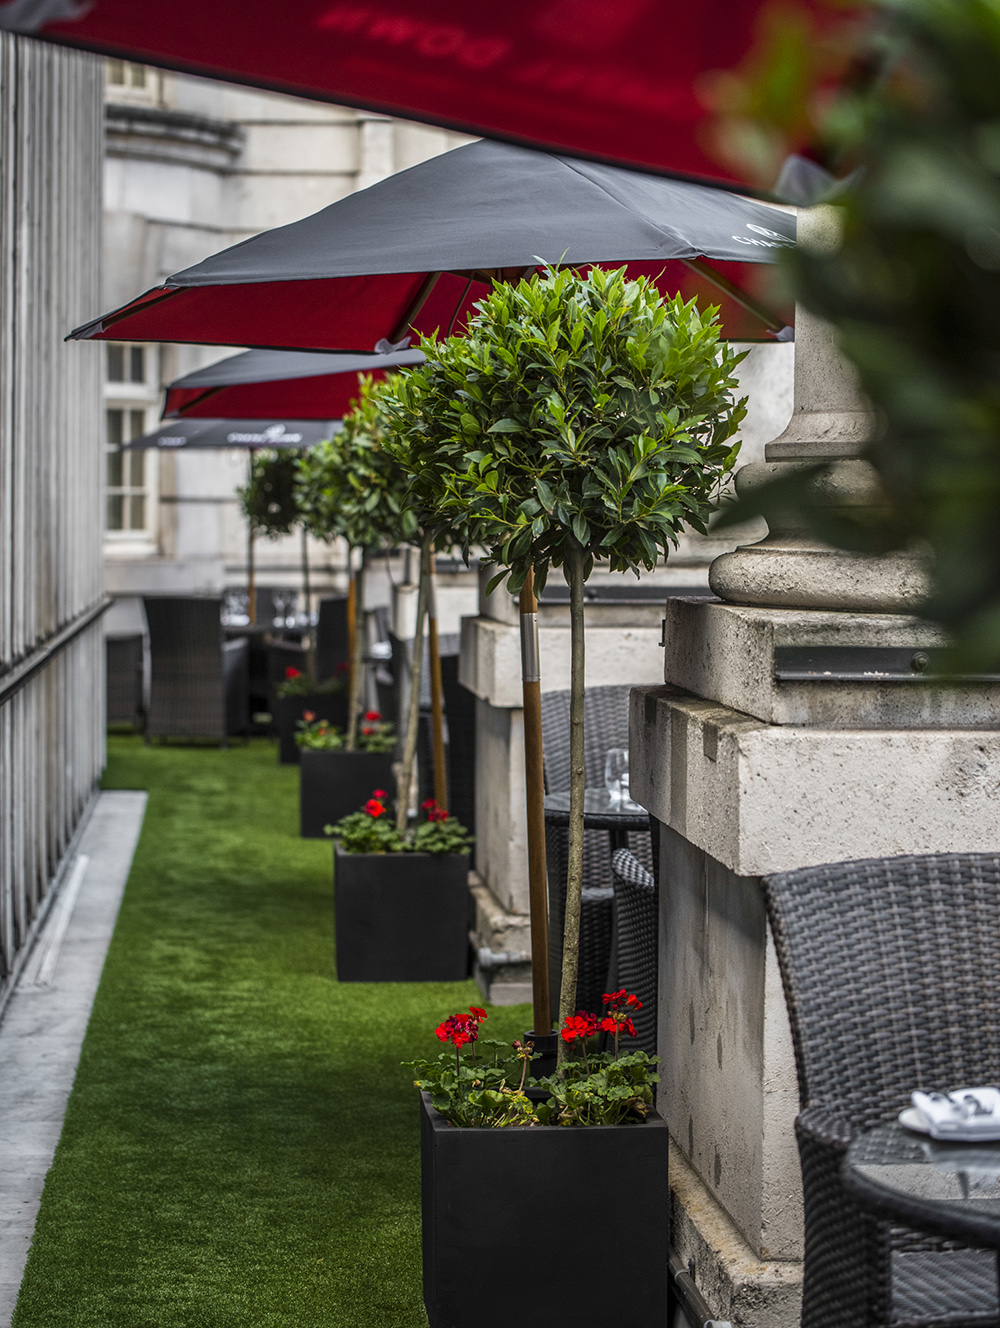 Terrace on Piccadilly - London